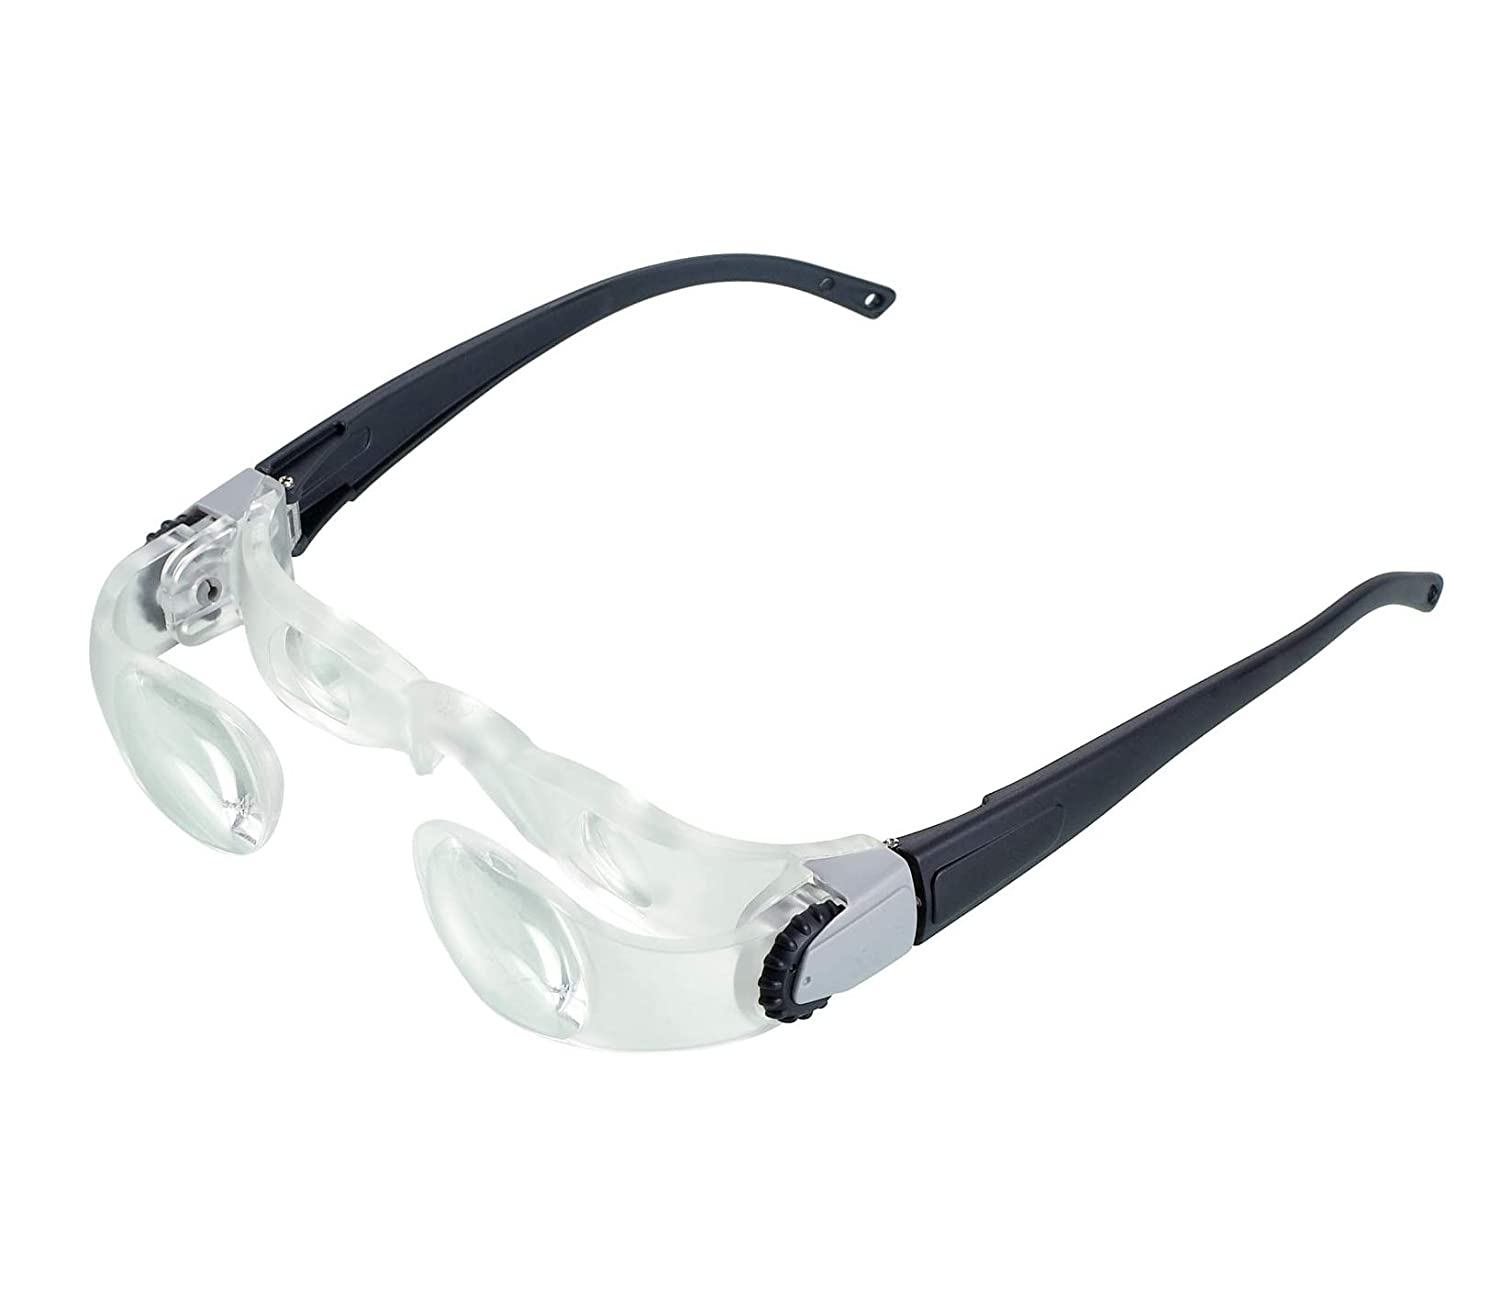 150X Head-Mounted Magnifying Glass with Double Optical Resin Lens,for Fishing Reading